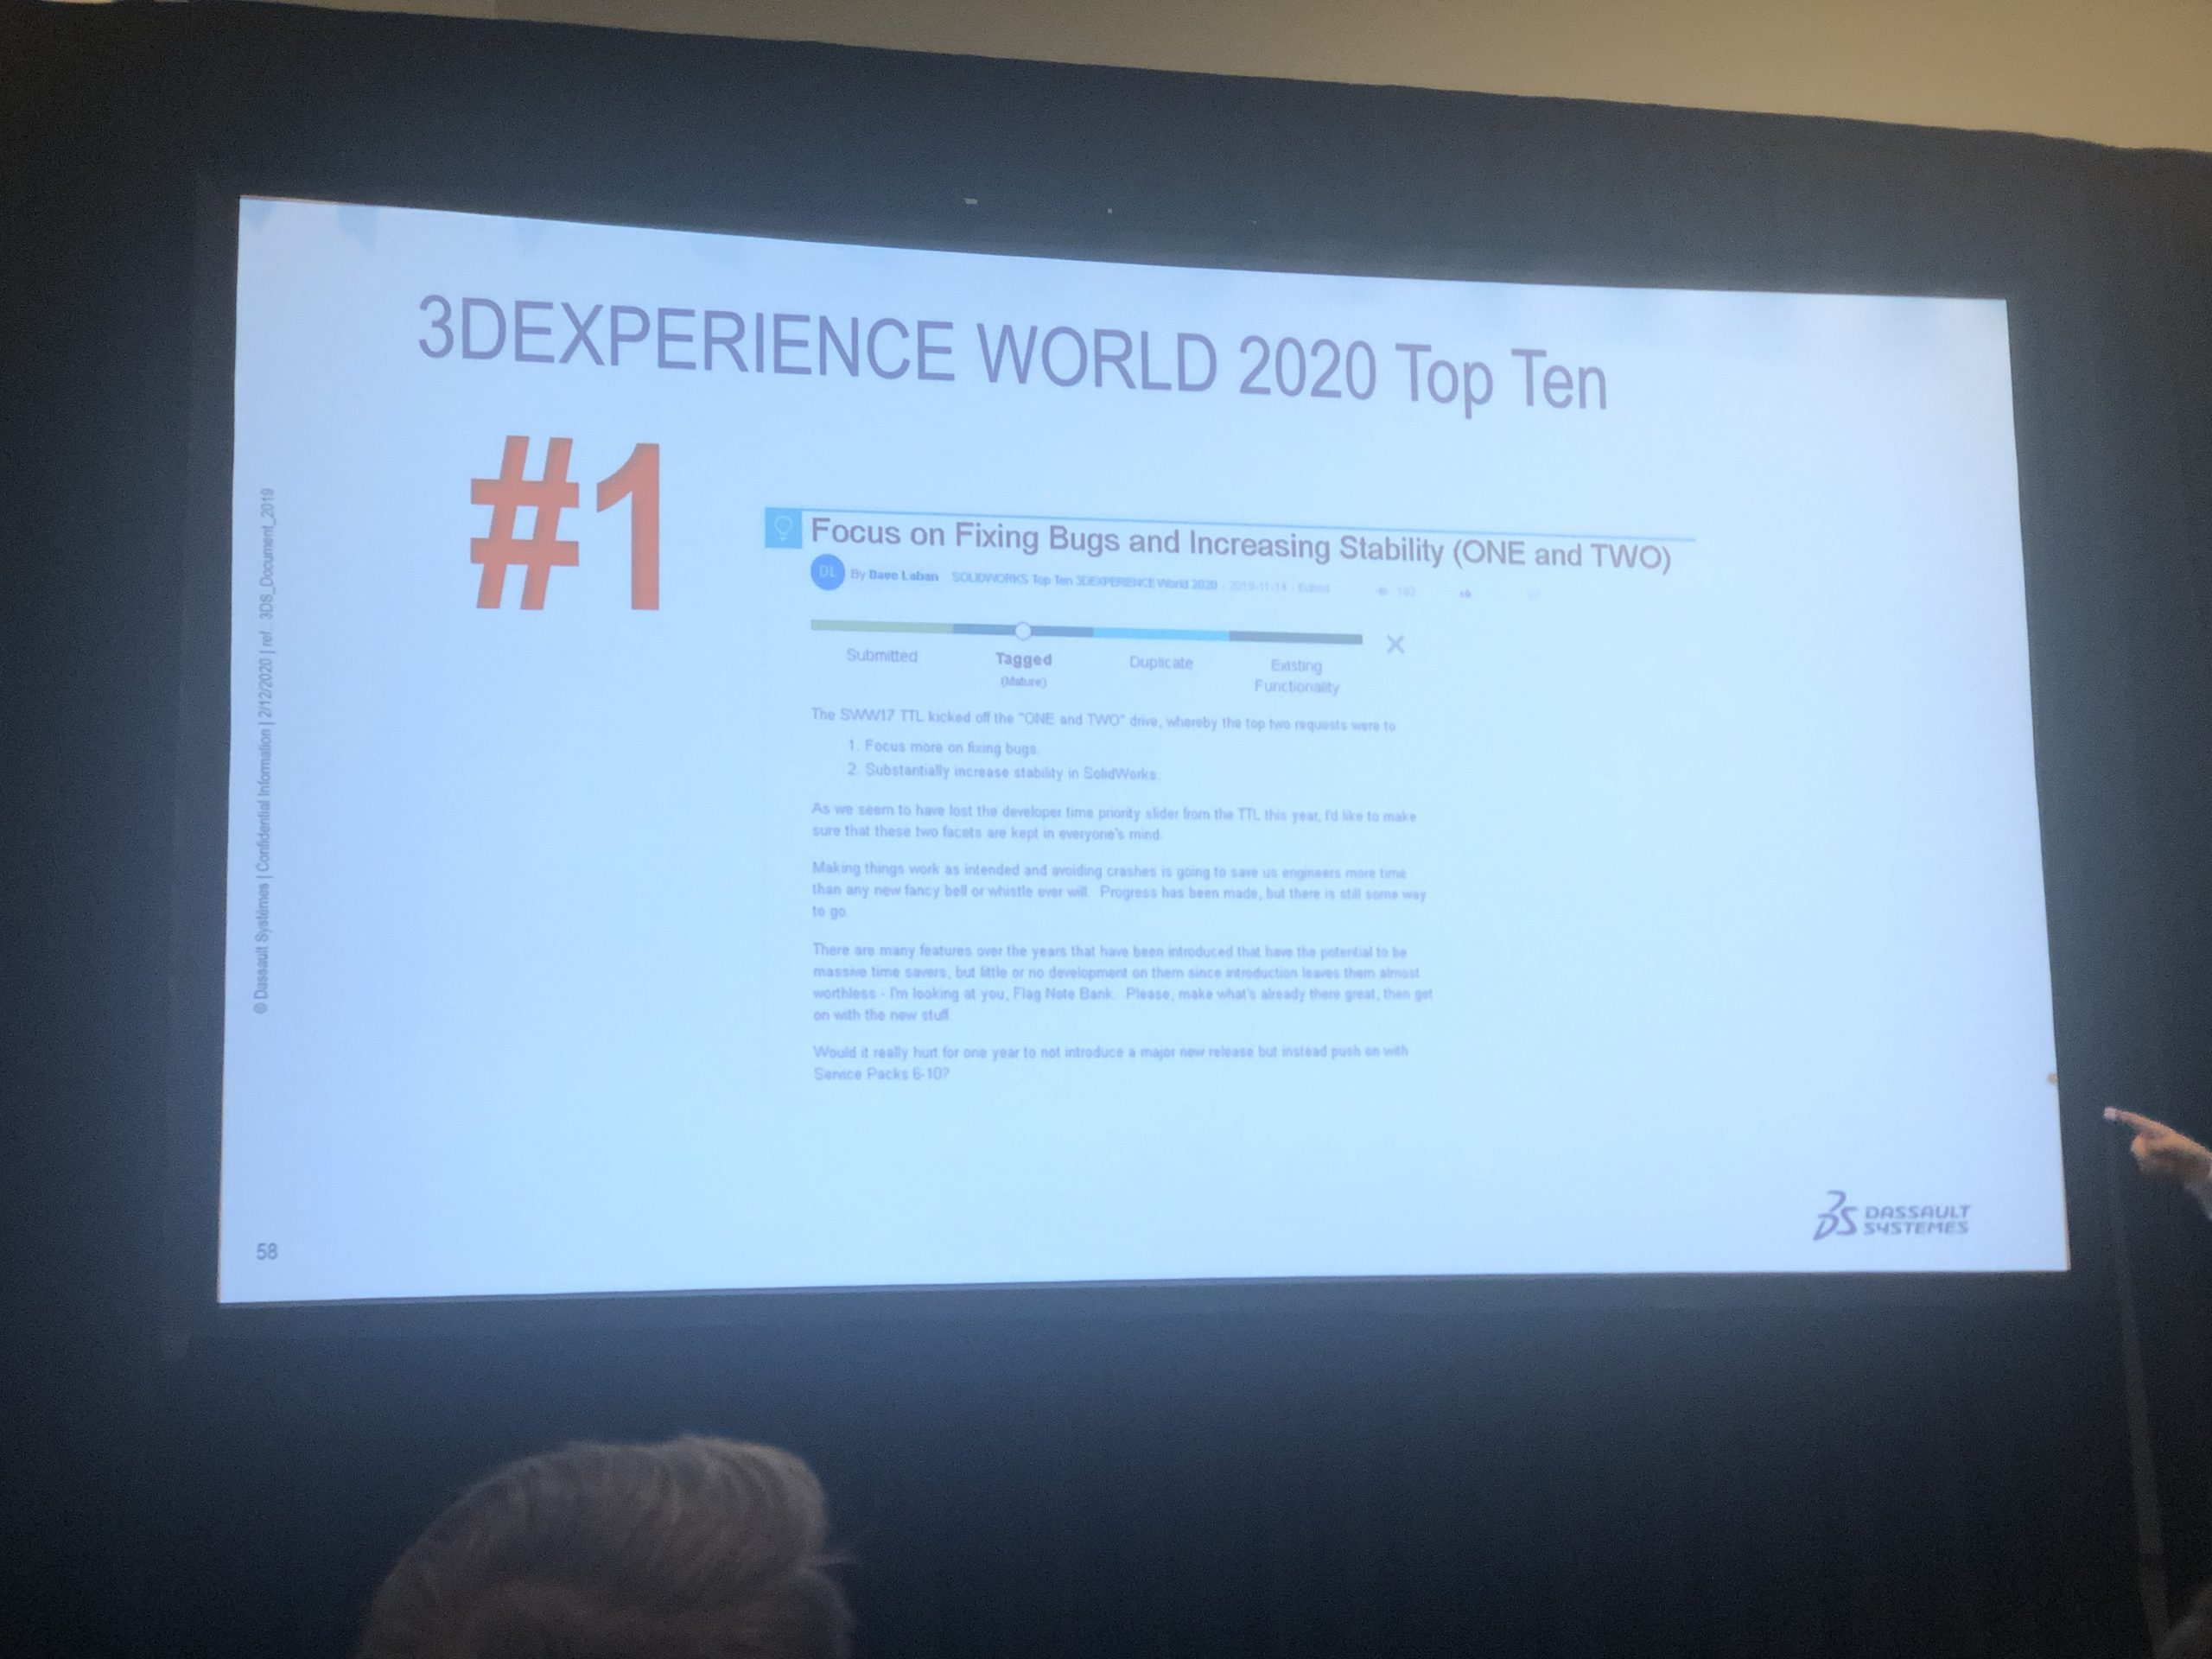 3DExperience World 2020 Top Ten List Data